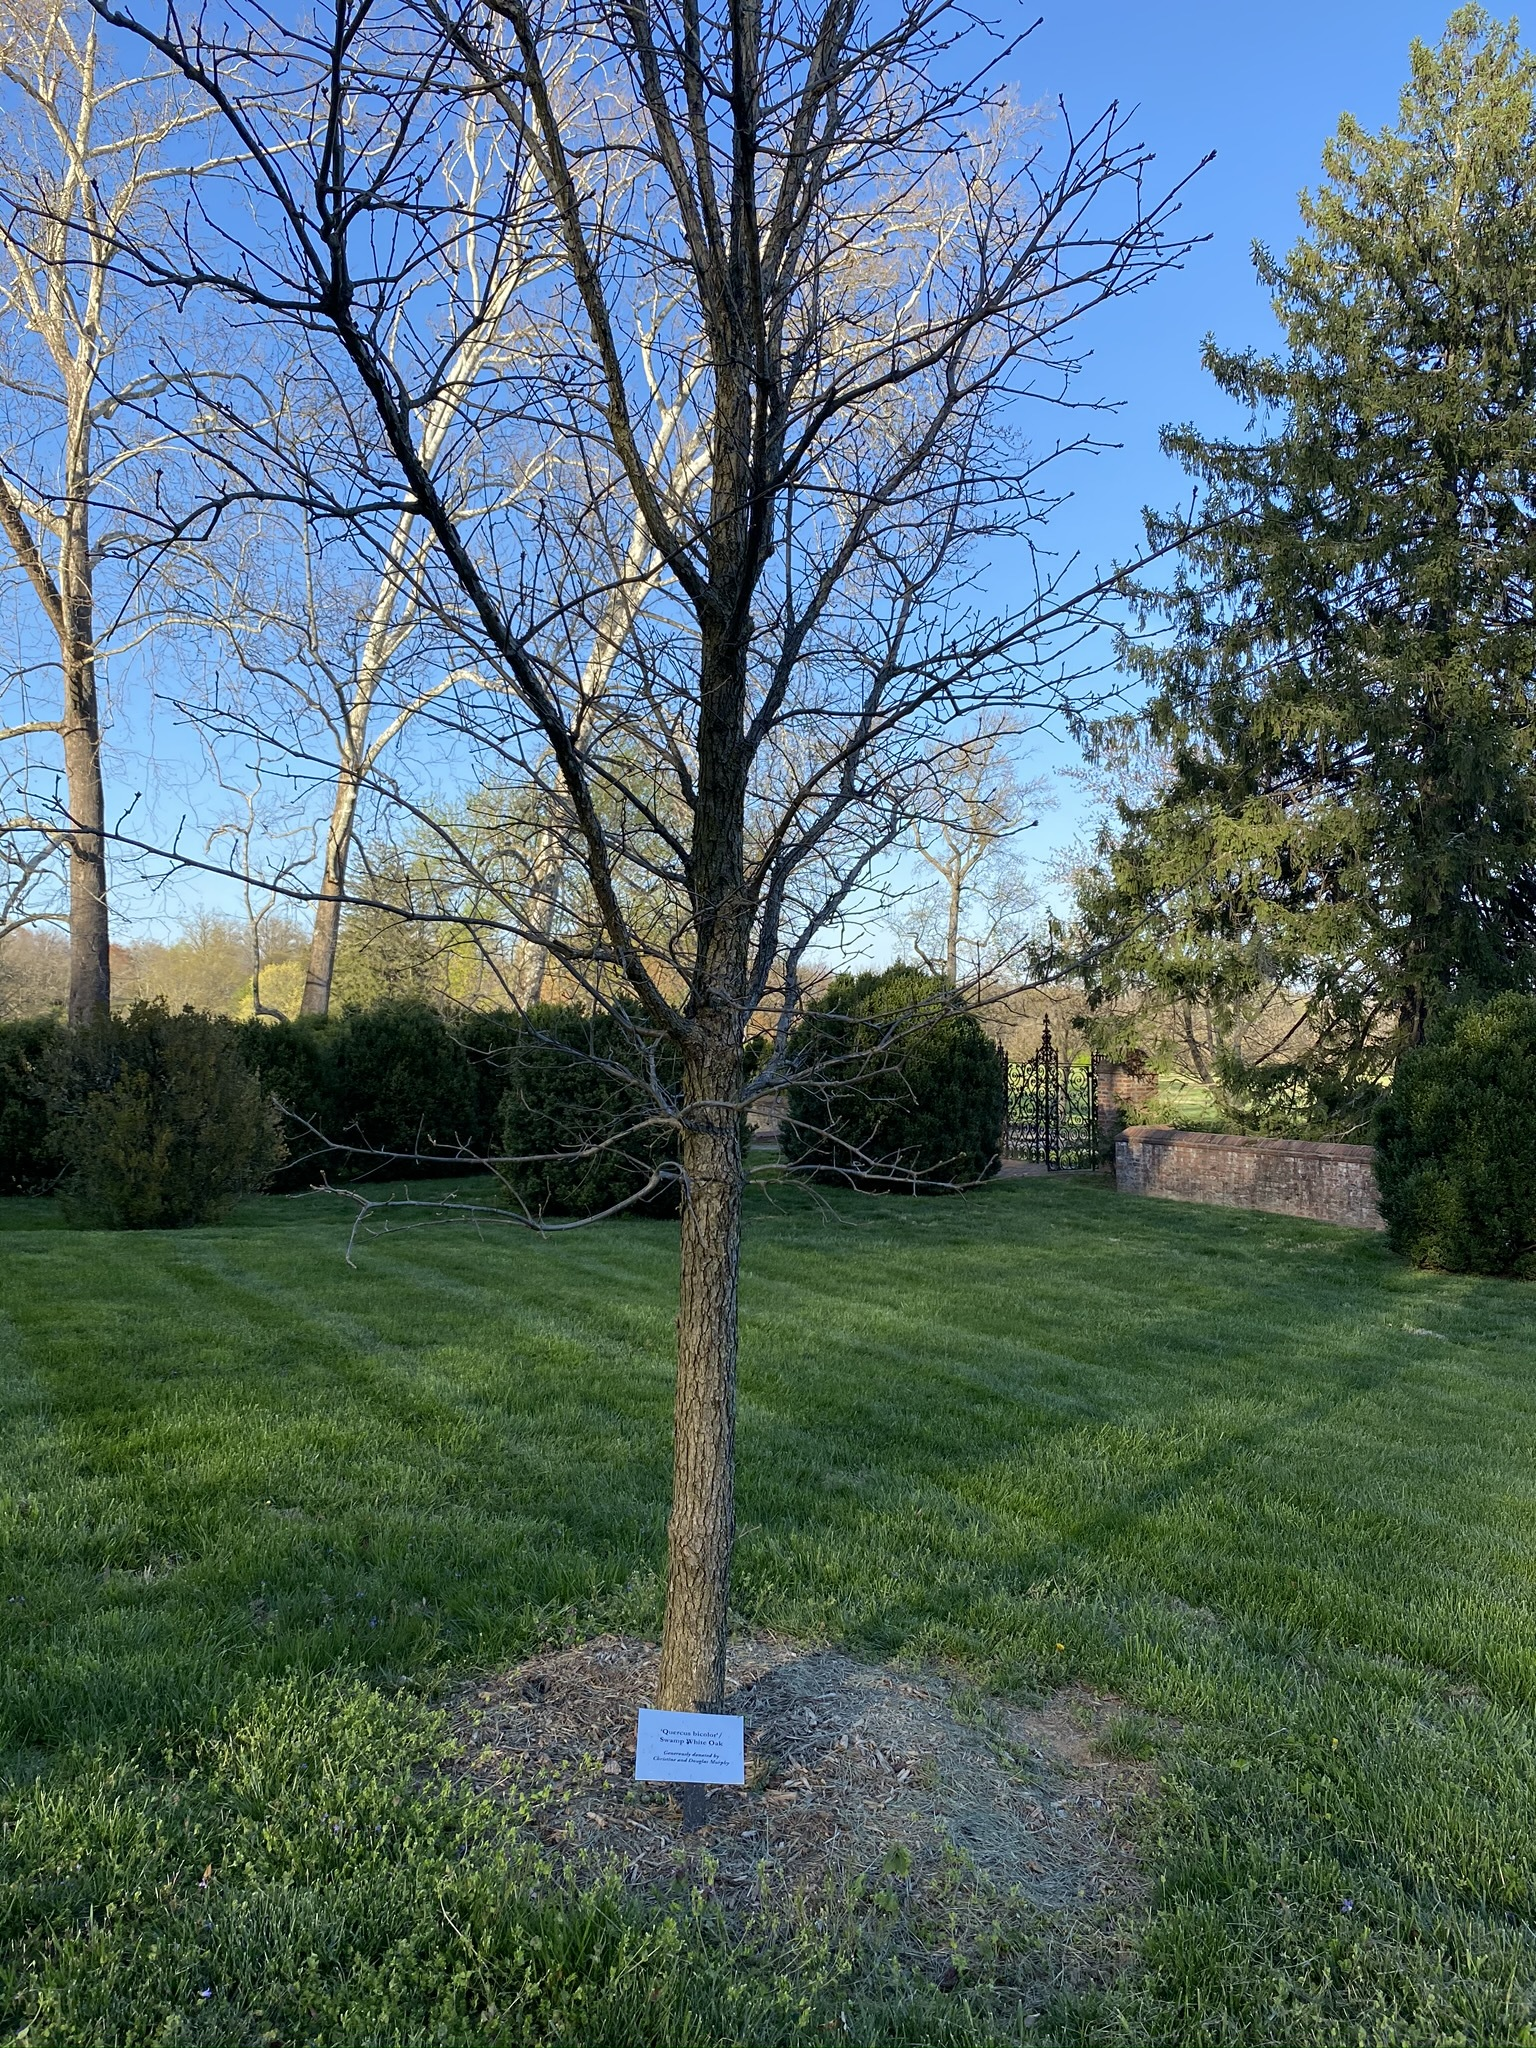 Speak for the trees! This $50 donation provides helpful tree identification markers so that Park guests can learn the difference between an Ash and an Elm tree.